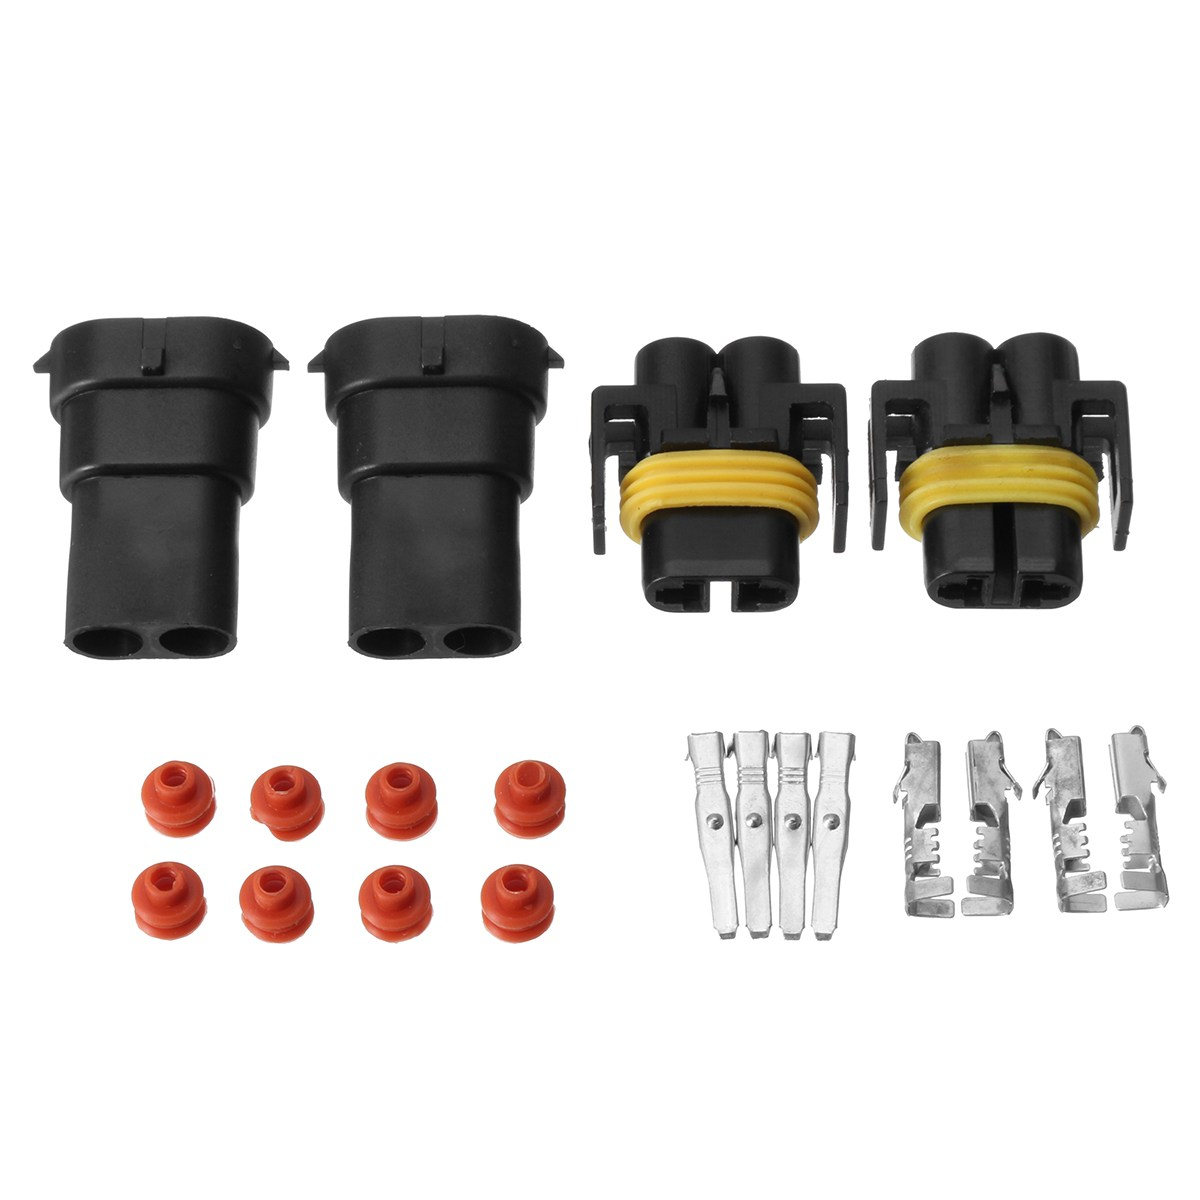 2Pair H8 H9 H11 880 881 Female And Male Adapter Harness Car Auto Wire Connectors For HID Xenon Light Socket Plug car light accessories amp d2s d2c d2r hid xenon cable adaptor socket for d2 d4 d4s d4r xenon hid headlight relay wiring harness